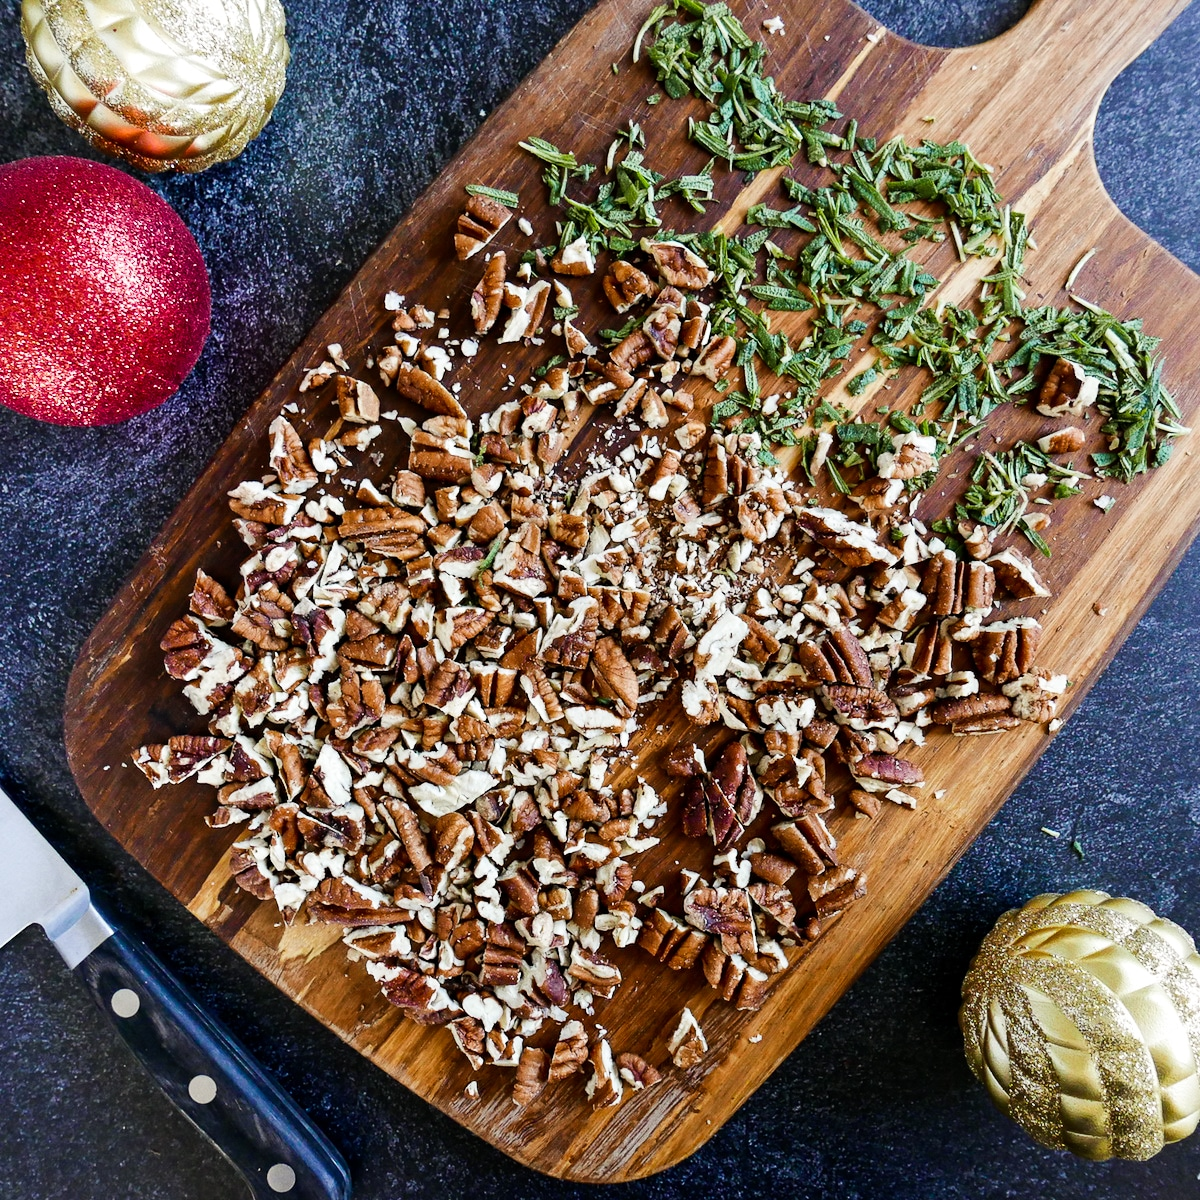 chopped pecans and rosemary on a wooden cutting board with knife